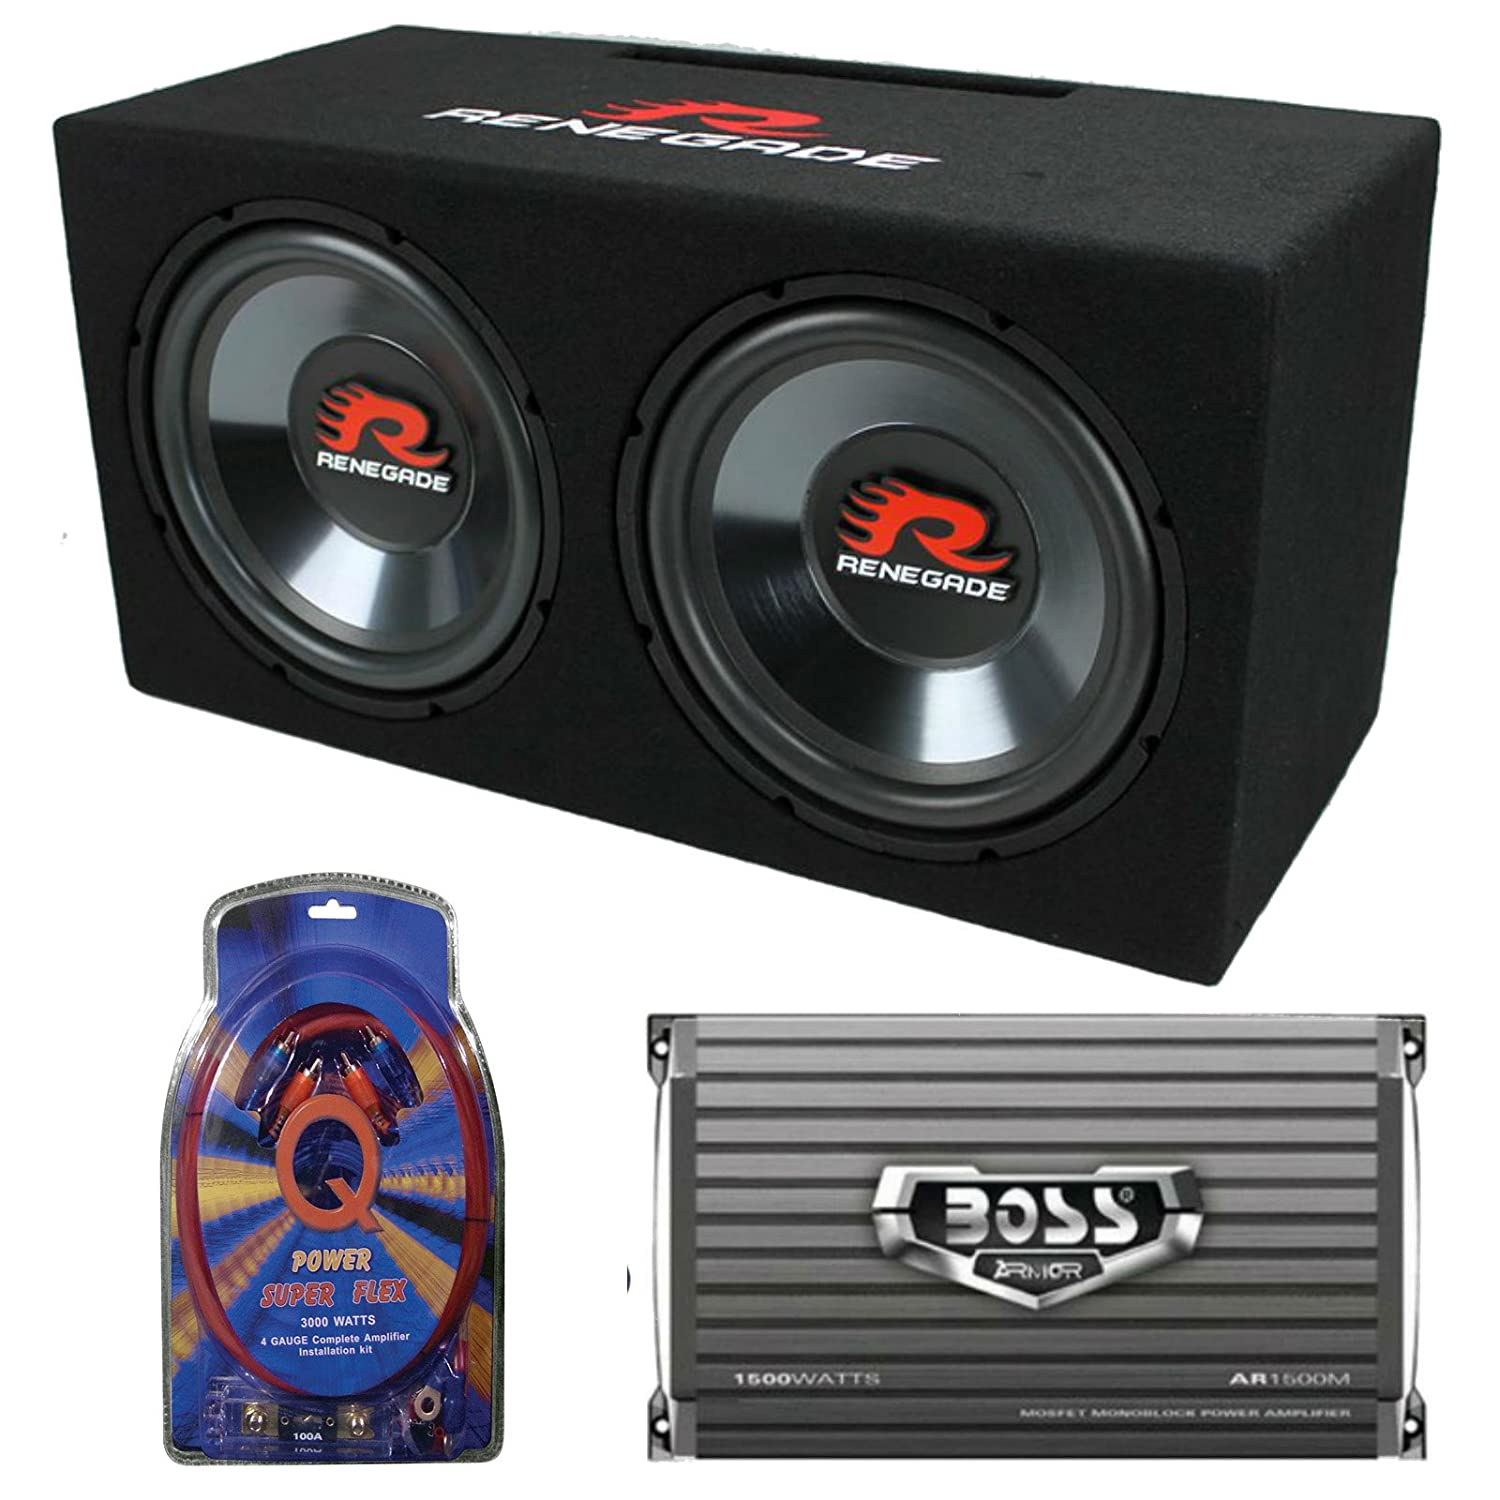 Renegade Rxv1202 12 1200w Dual Car Subwoofers Box New 4 Gauge Power Amplifier Amp Kit 1200 Watt Install Wiring 1500w Mono Electronics